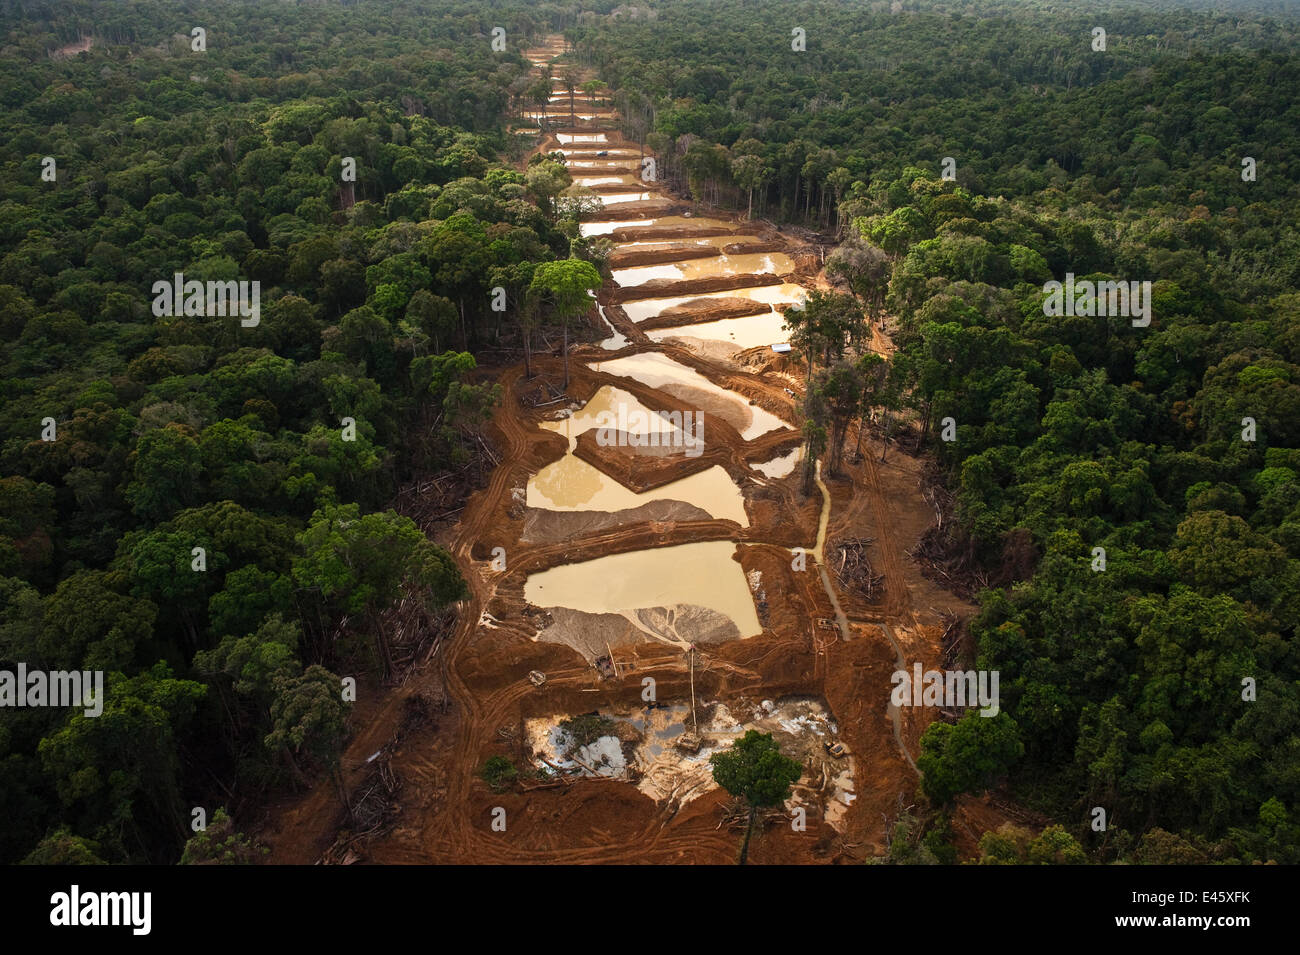 Aerial view of Alluvial Gold Mine in the rainforest, Guyana